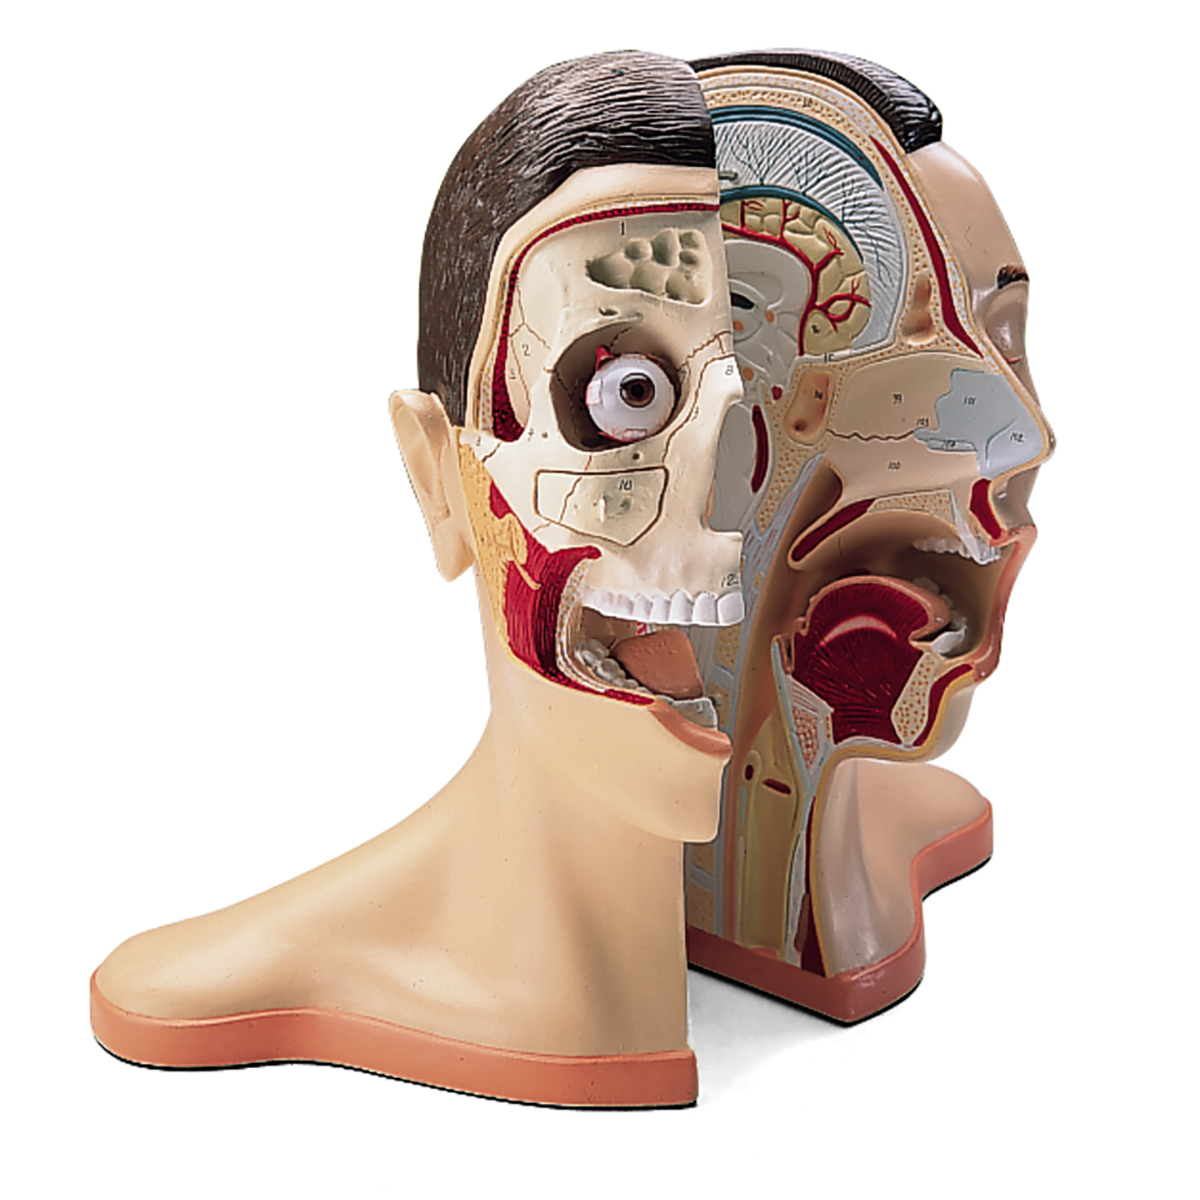 Anatomical Teaching Models - Plastic Anatomy Models - Head and Neck ...